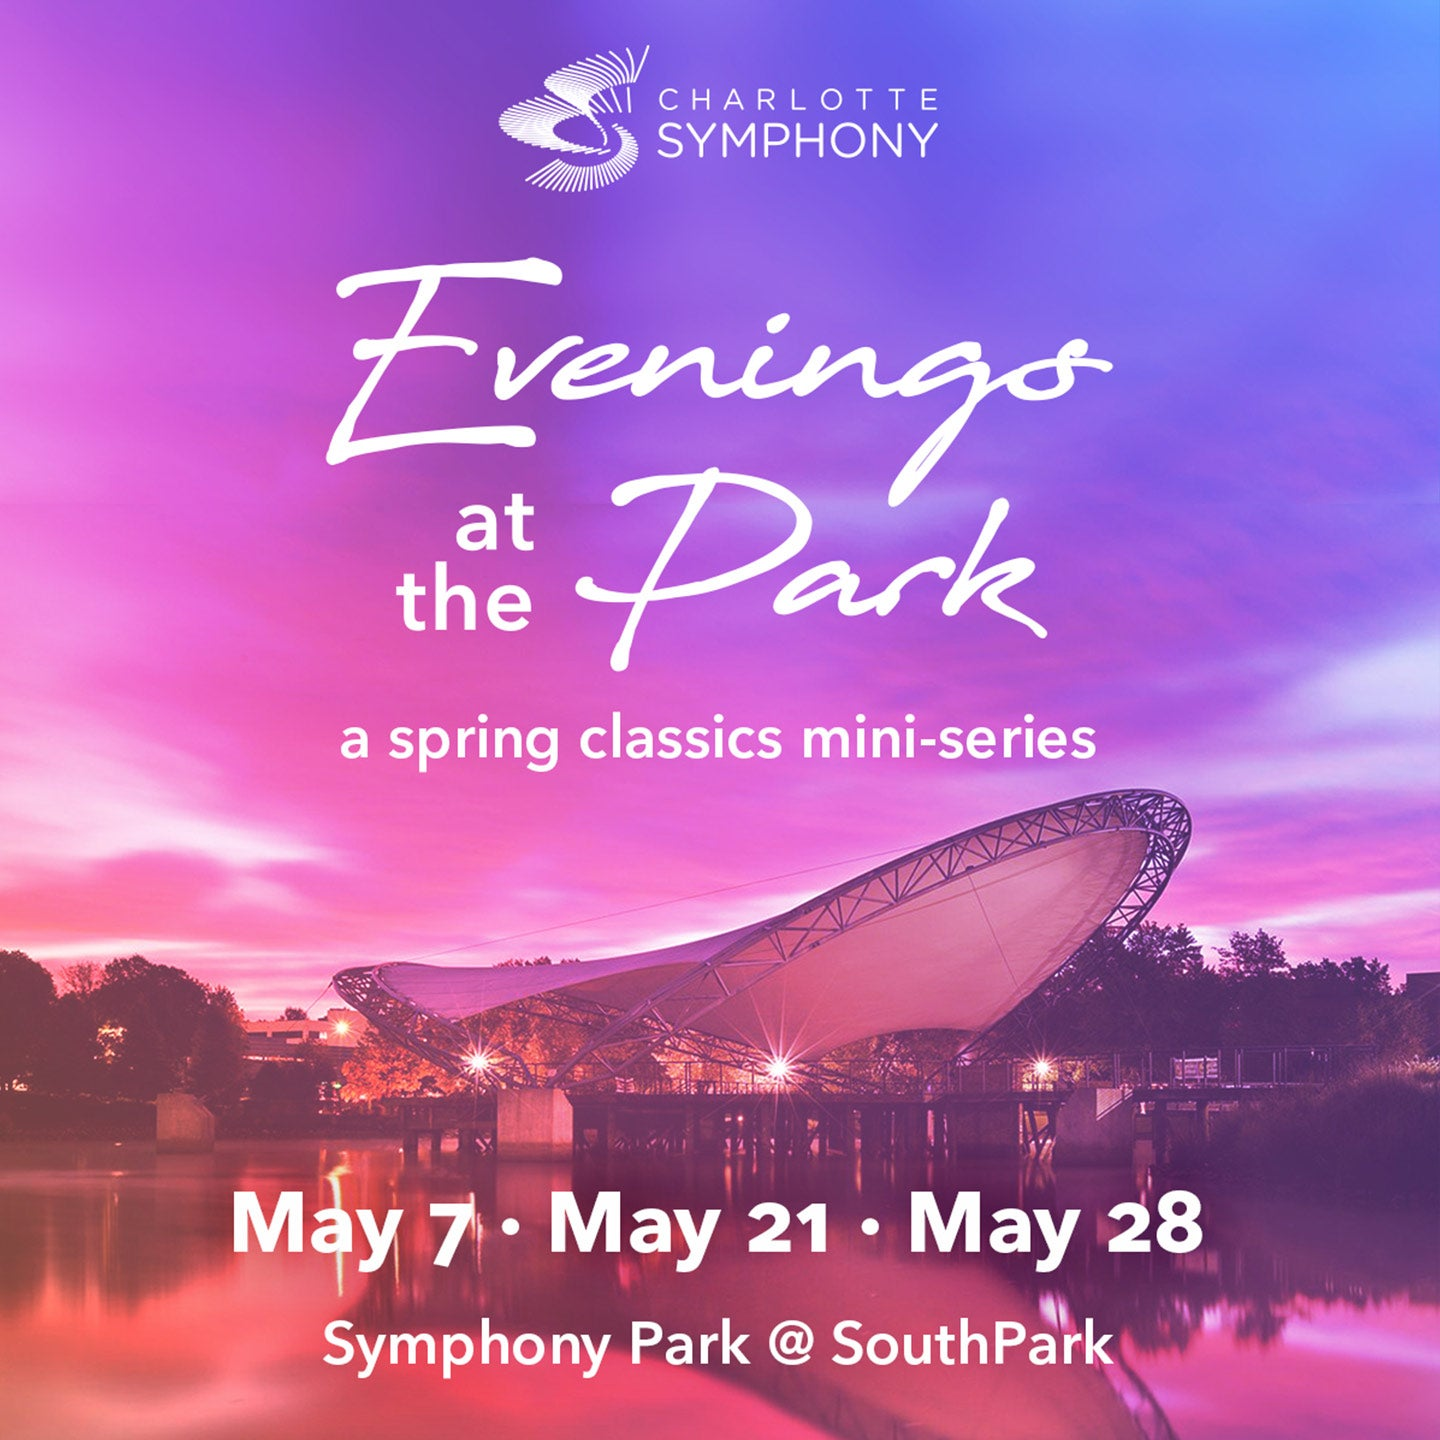 Charlotte Symphony: Evenings at the Park